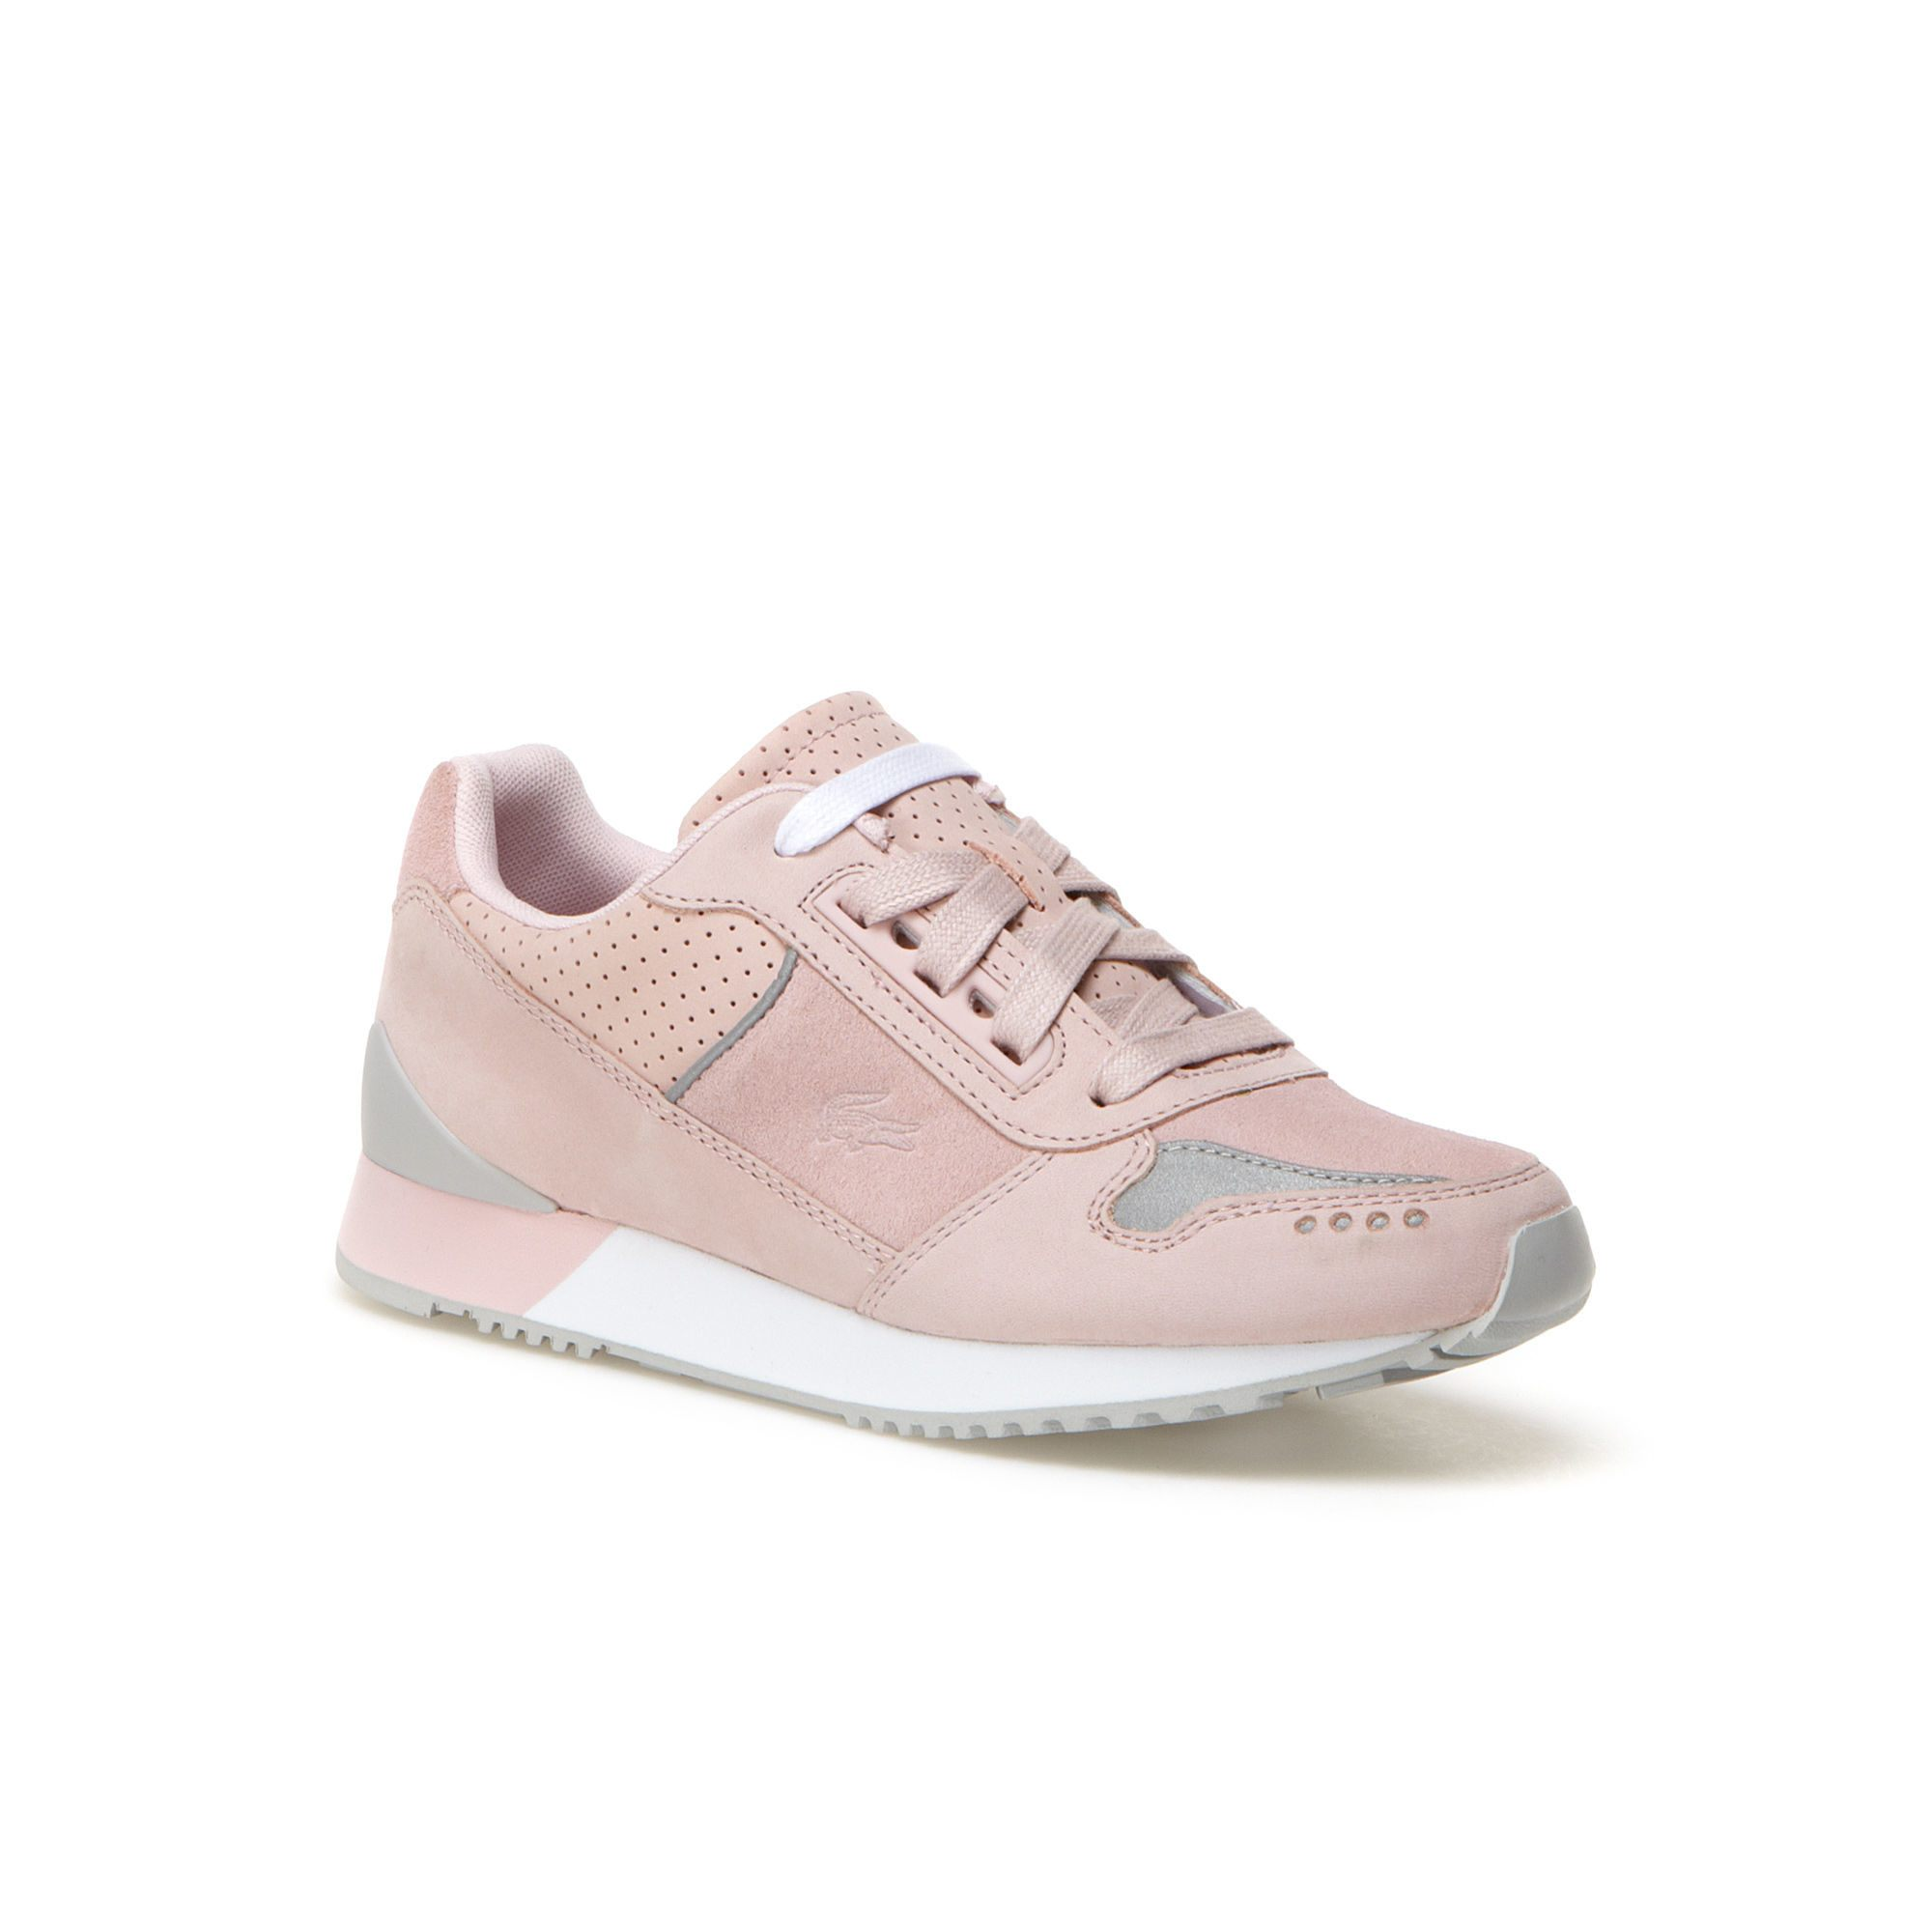 Femme Pale Rose Rose Femme Lacoste Lacoste Chaussure Chaussure Pale A45RjL